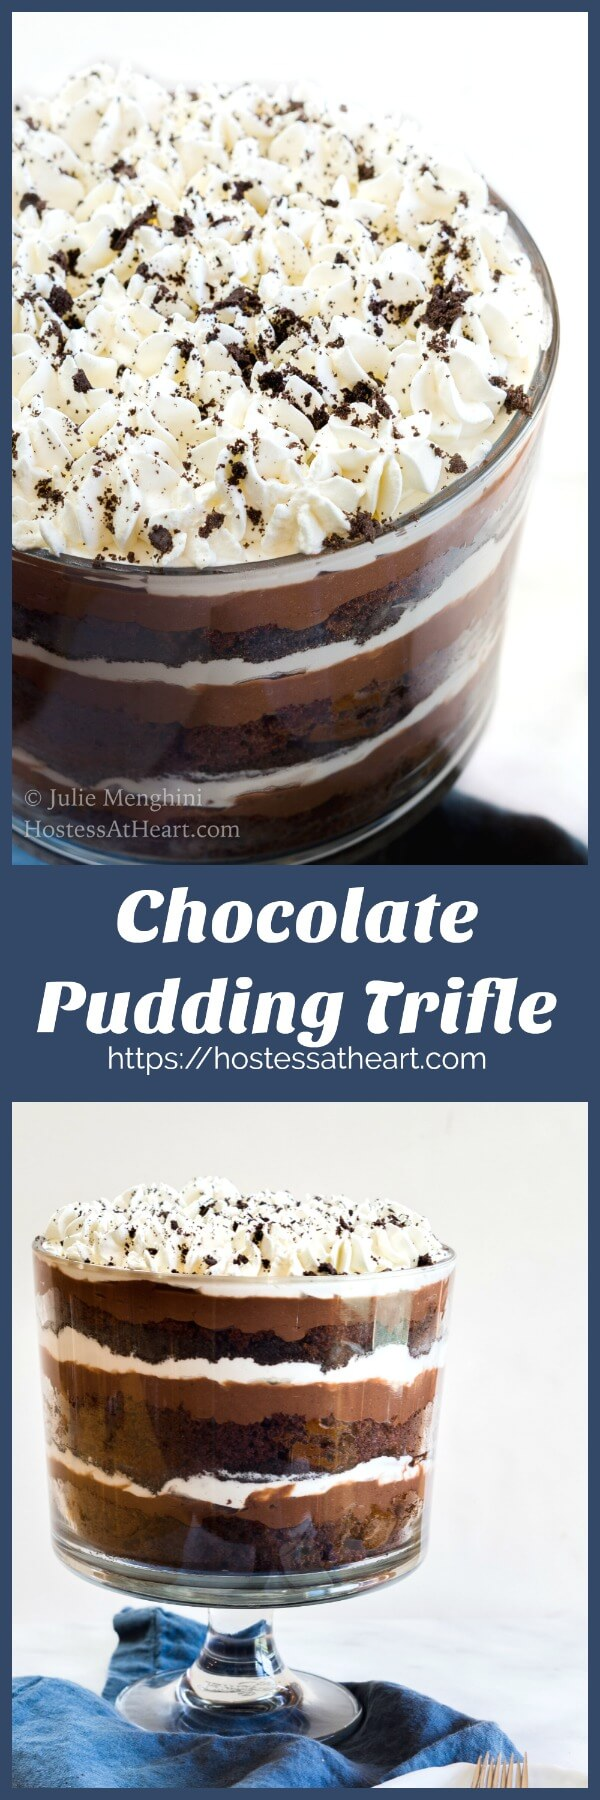 This Chocolate Pudding Trifle has delicious layers of chocolate cake, pudding, cookie crumbs and whipped cream.  It is dreamy and creamy goodness! | HostessAtHeart.com #Chocolate Dessert #Comfortfood #recipe #sweets #homemade | Chocolate Desserts | Easy Desserts | Party Food